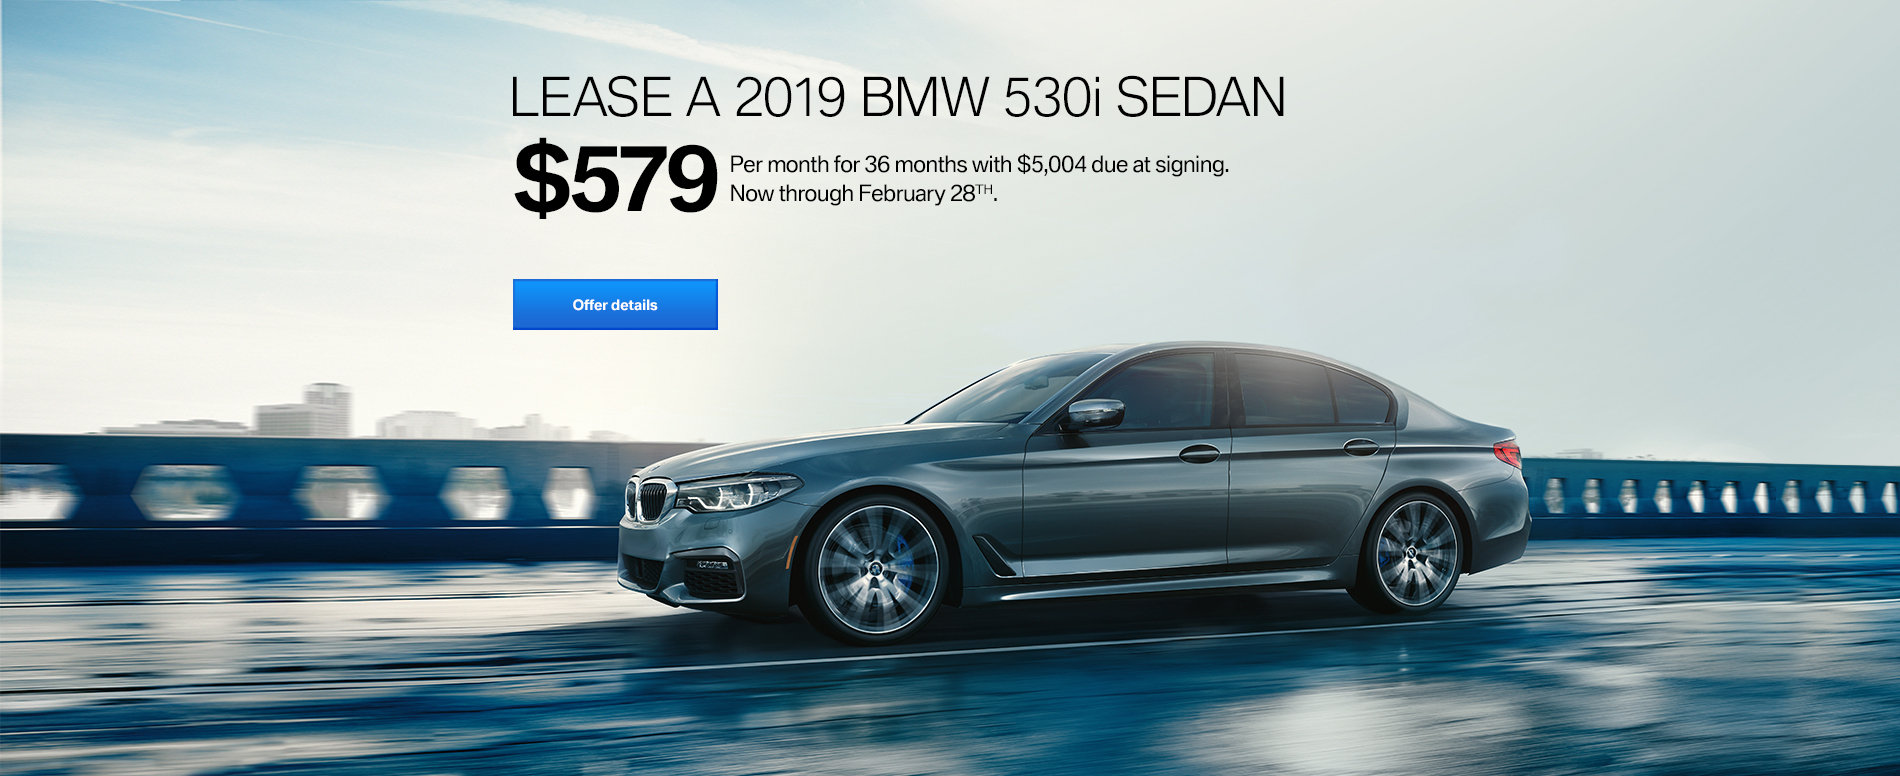 LEASE A 2019 BMW 530i FOR $579/MONTH FOR 36 MONTHS WITH $5,004 D